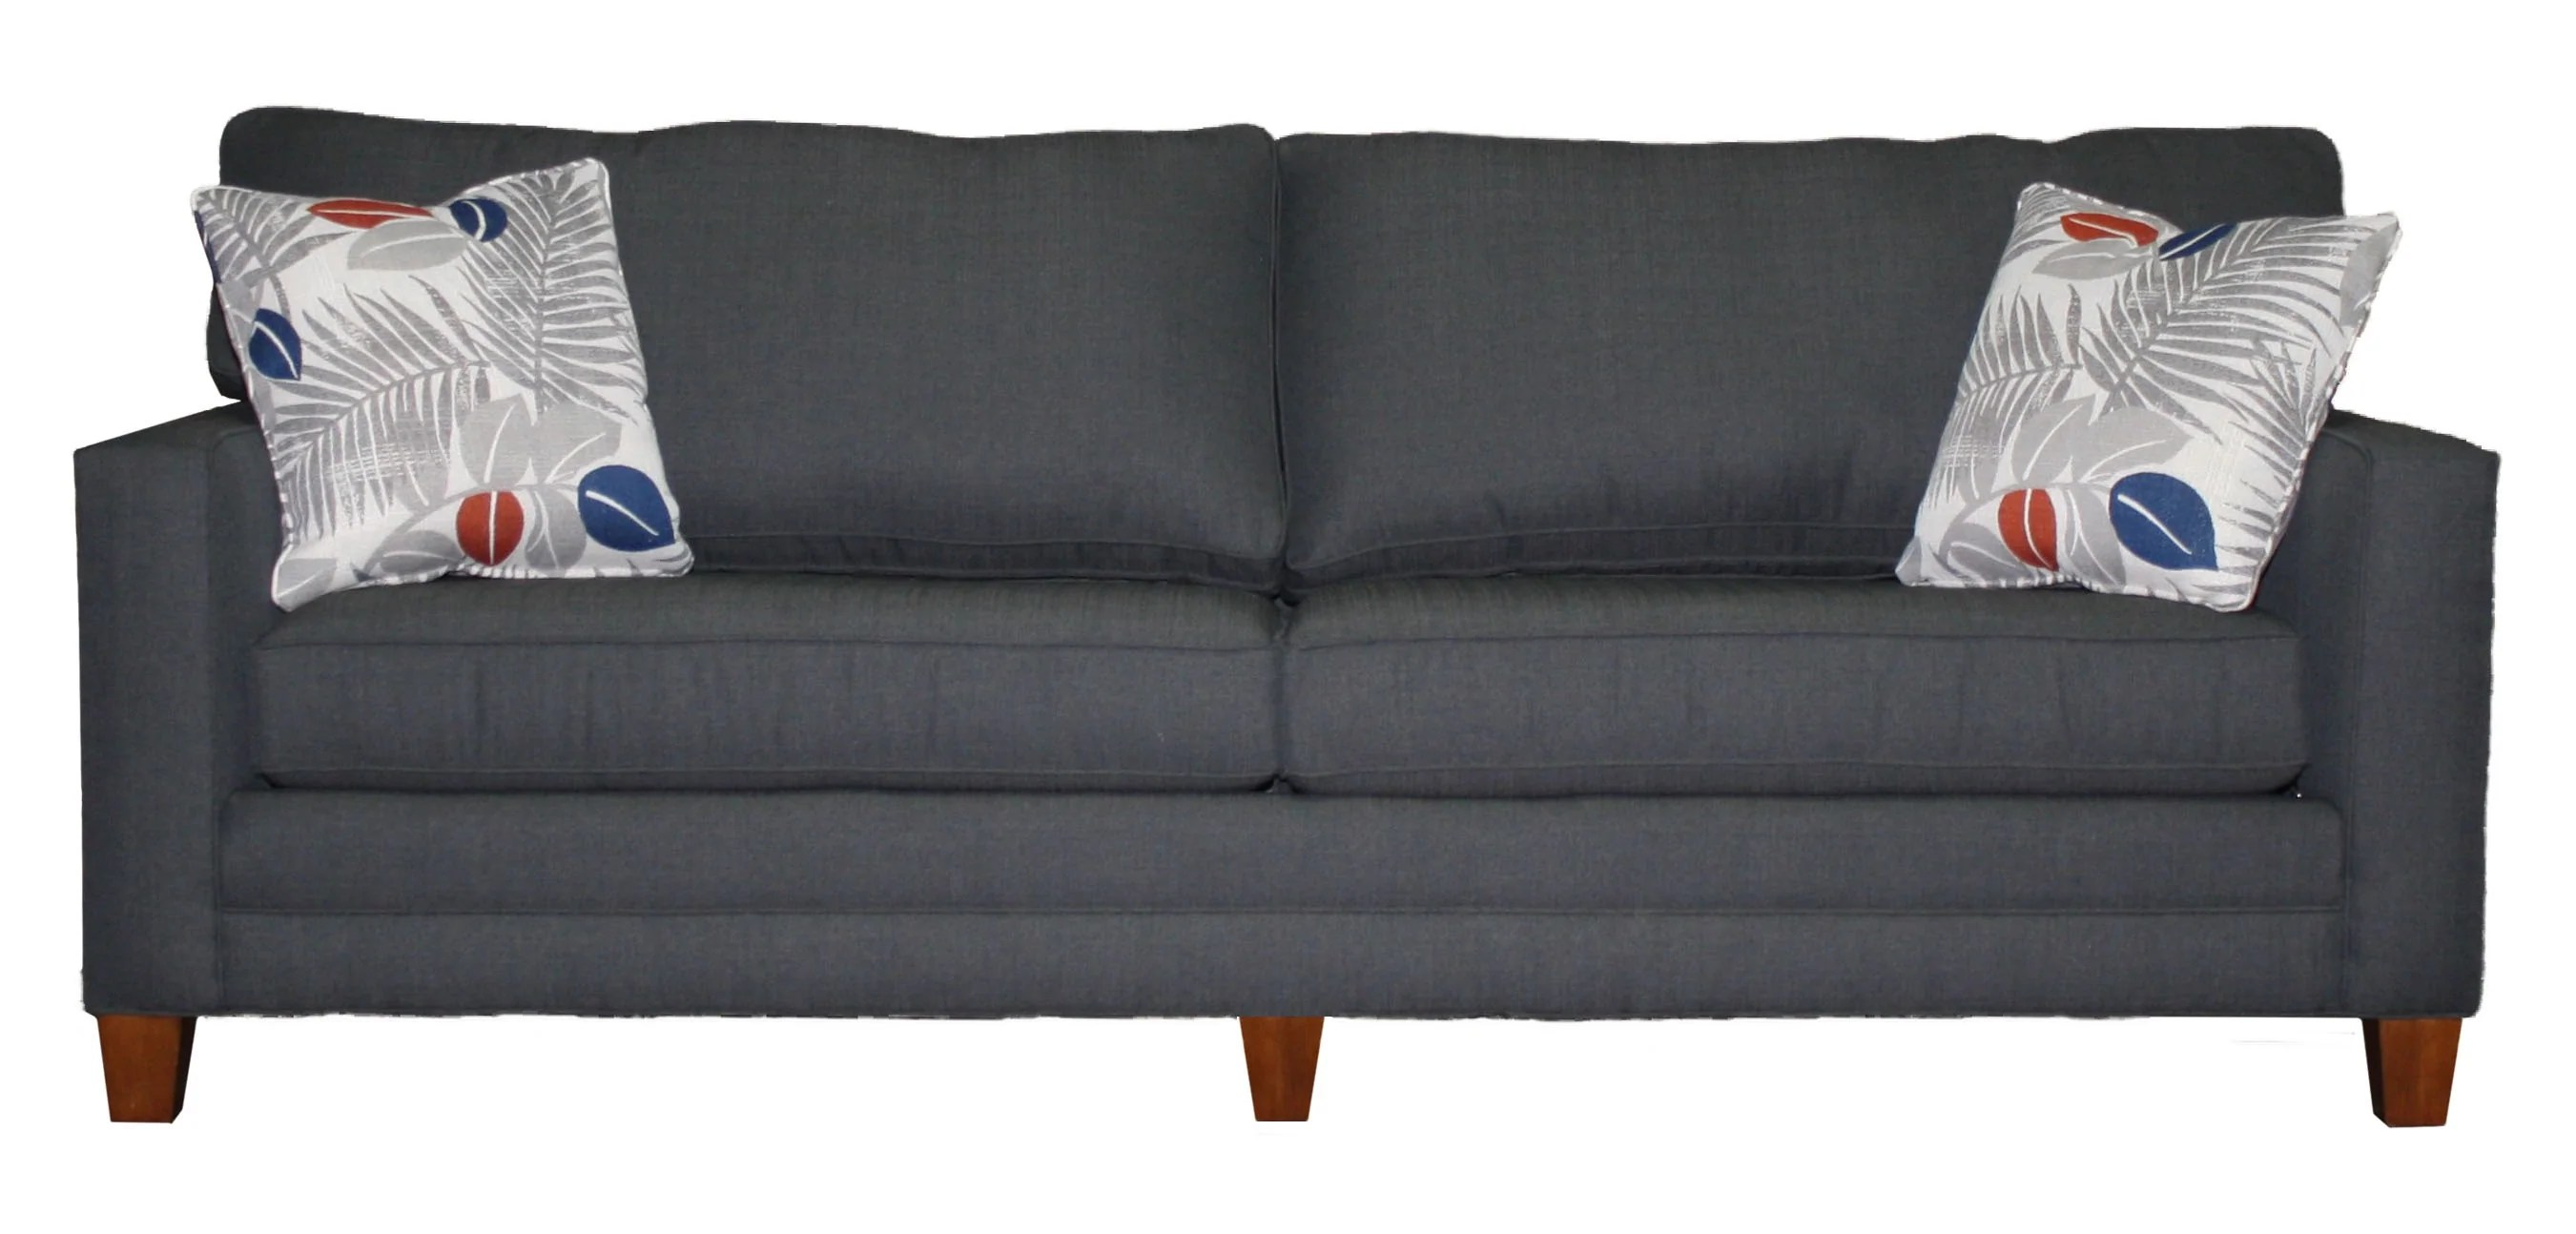 2 cushion sofa leather corner with drink holder tailor made wide track arm 91 from endicott home 3 81 furnishings in